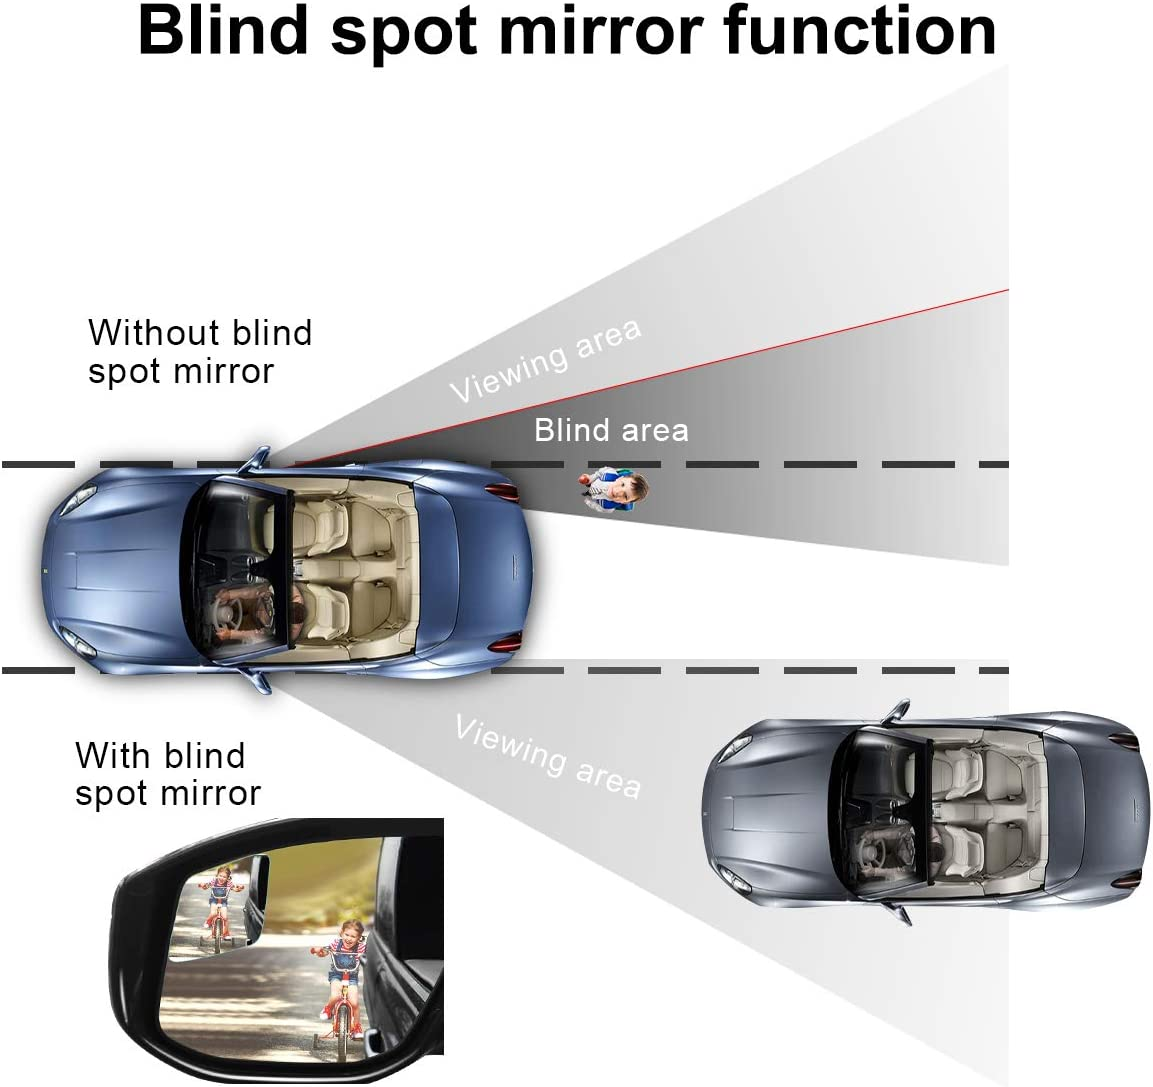 UNIVERSAL BLIND SPORT MIRROR 120R CONVEX WIDE VIEW ANGLE 2 INCH EASY FIT-MIN1